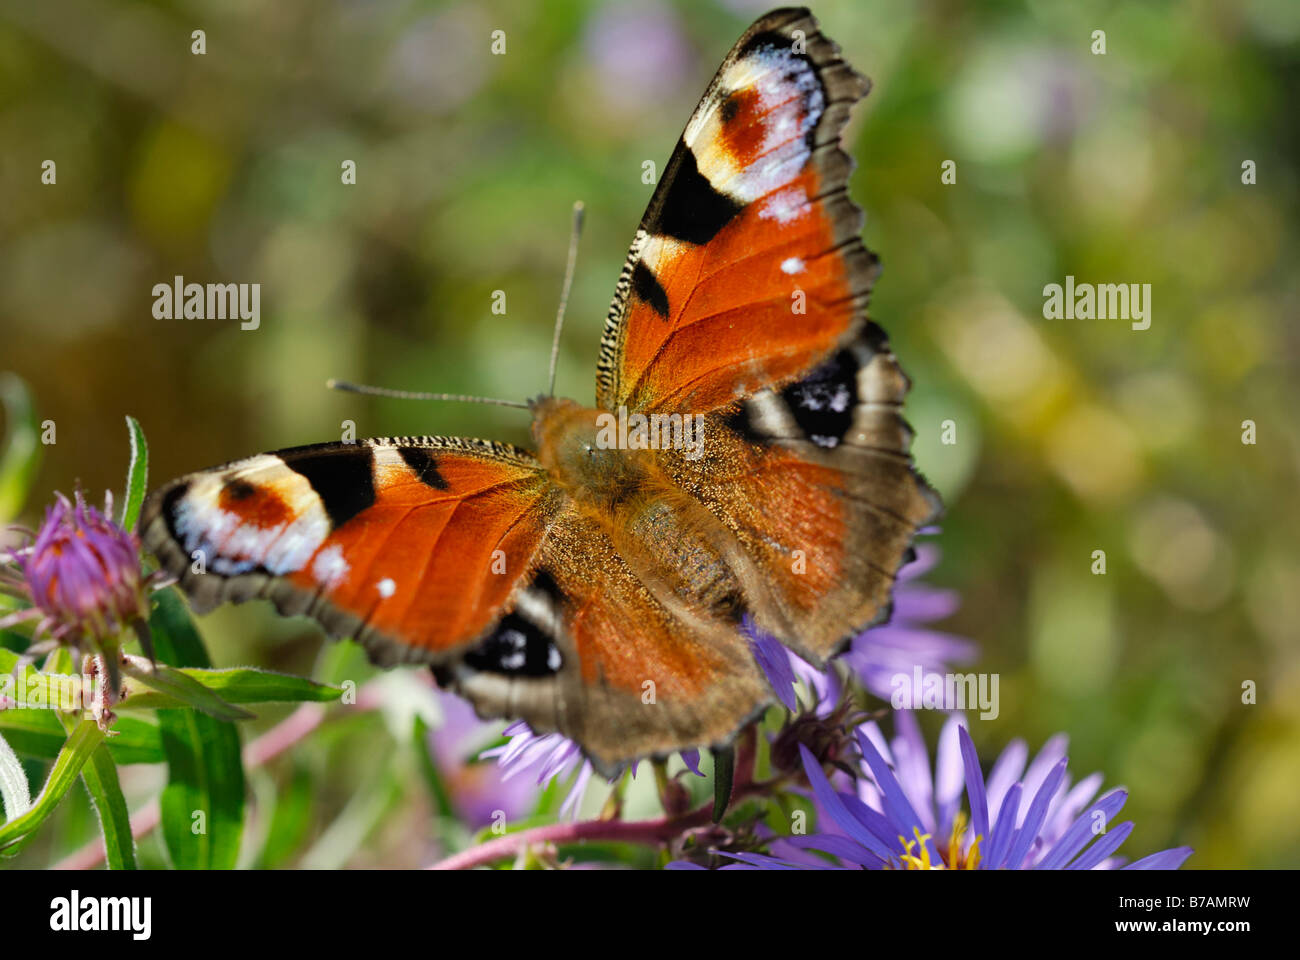 Peacock Butterfly (Inachis Nymphalis io) on an aromatic aster (Aster oblongifolius) - Stock Image